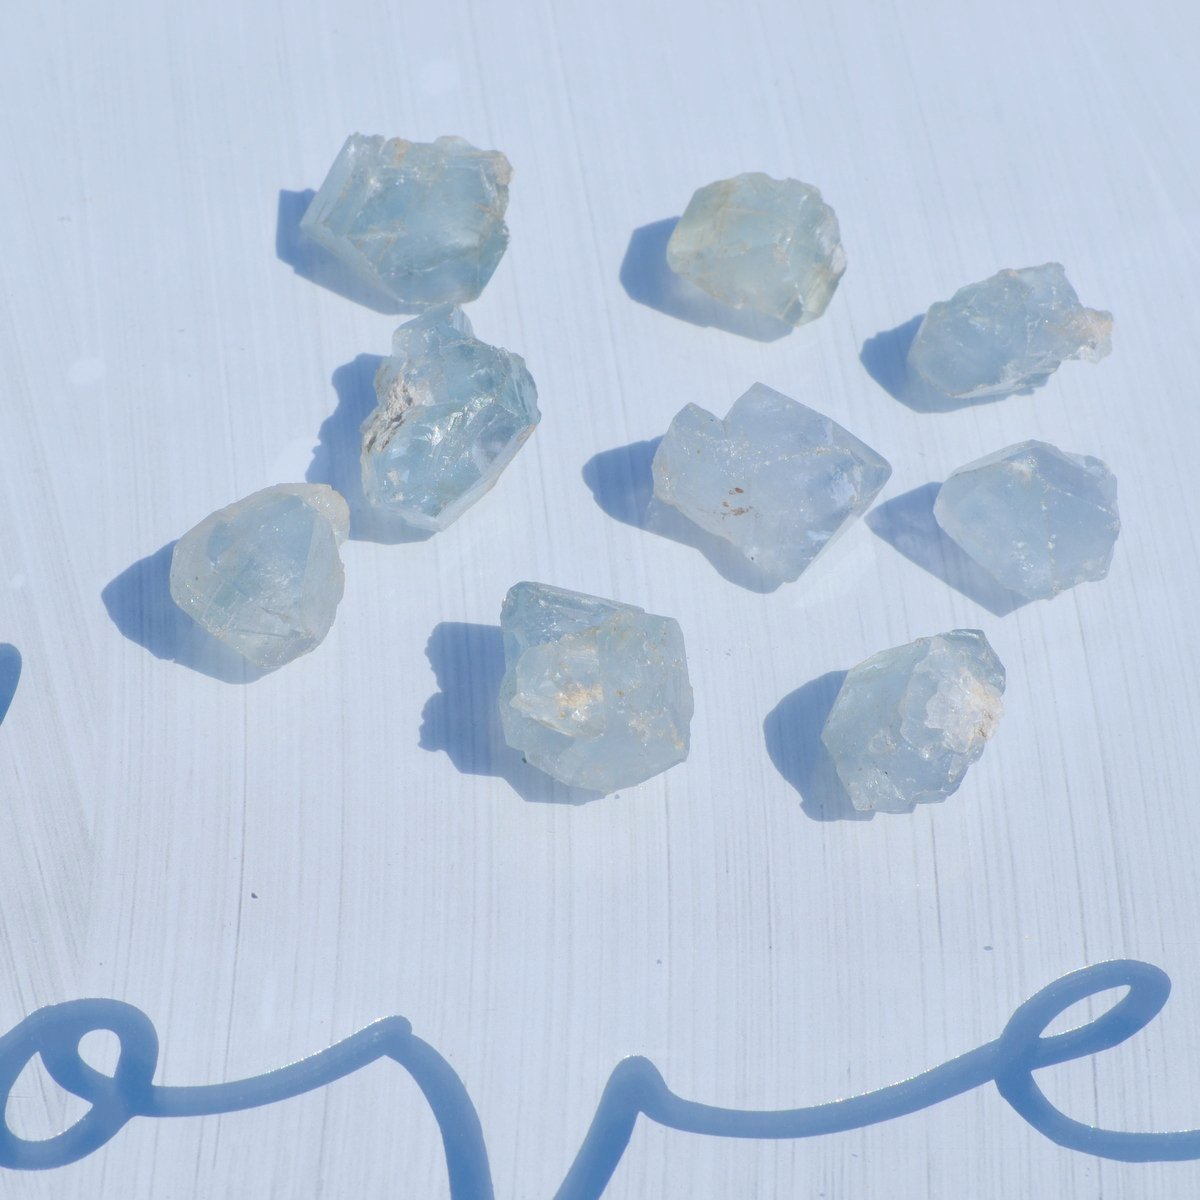 Blue Celestite Natural Crystals Each - Angels Insight Calm - Available now at Illiom Crystals - Afterpay Available